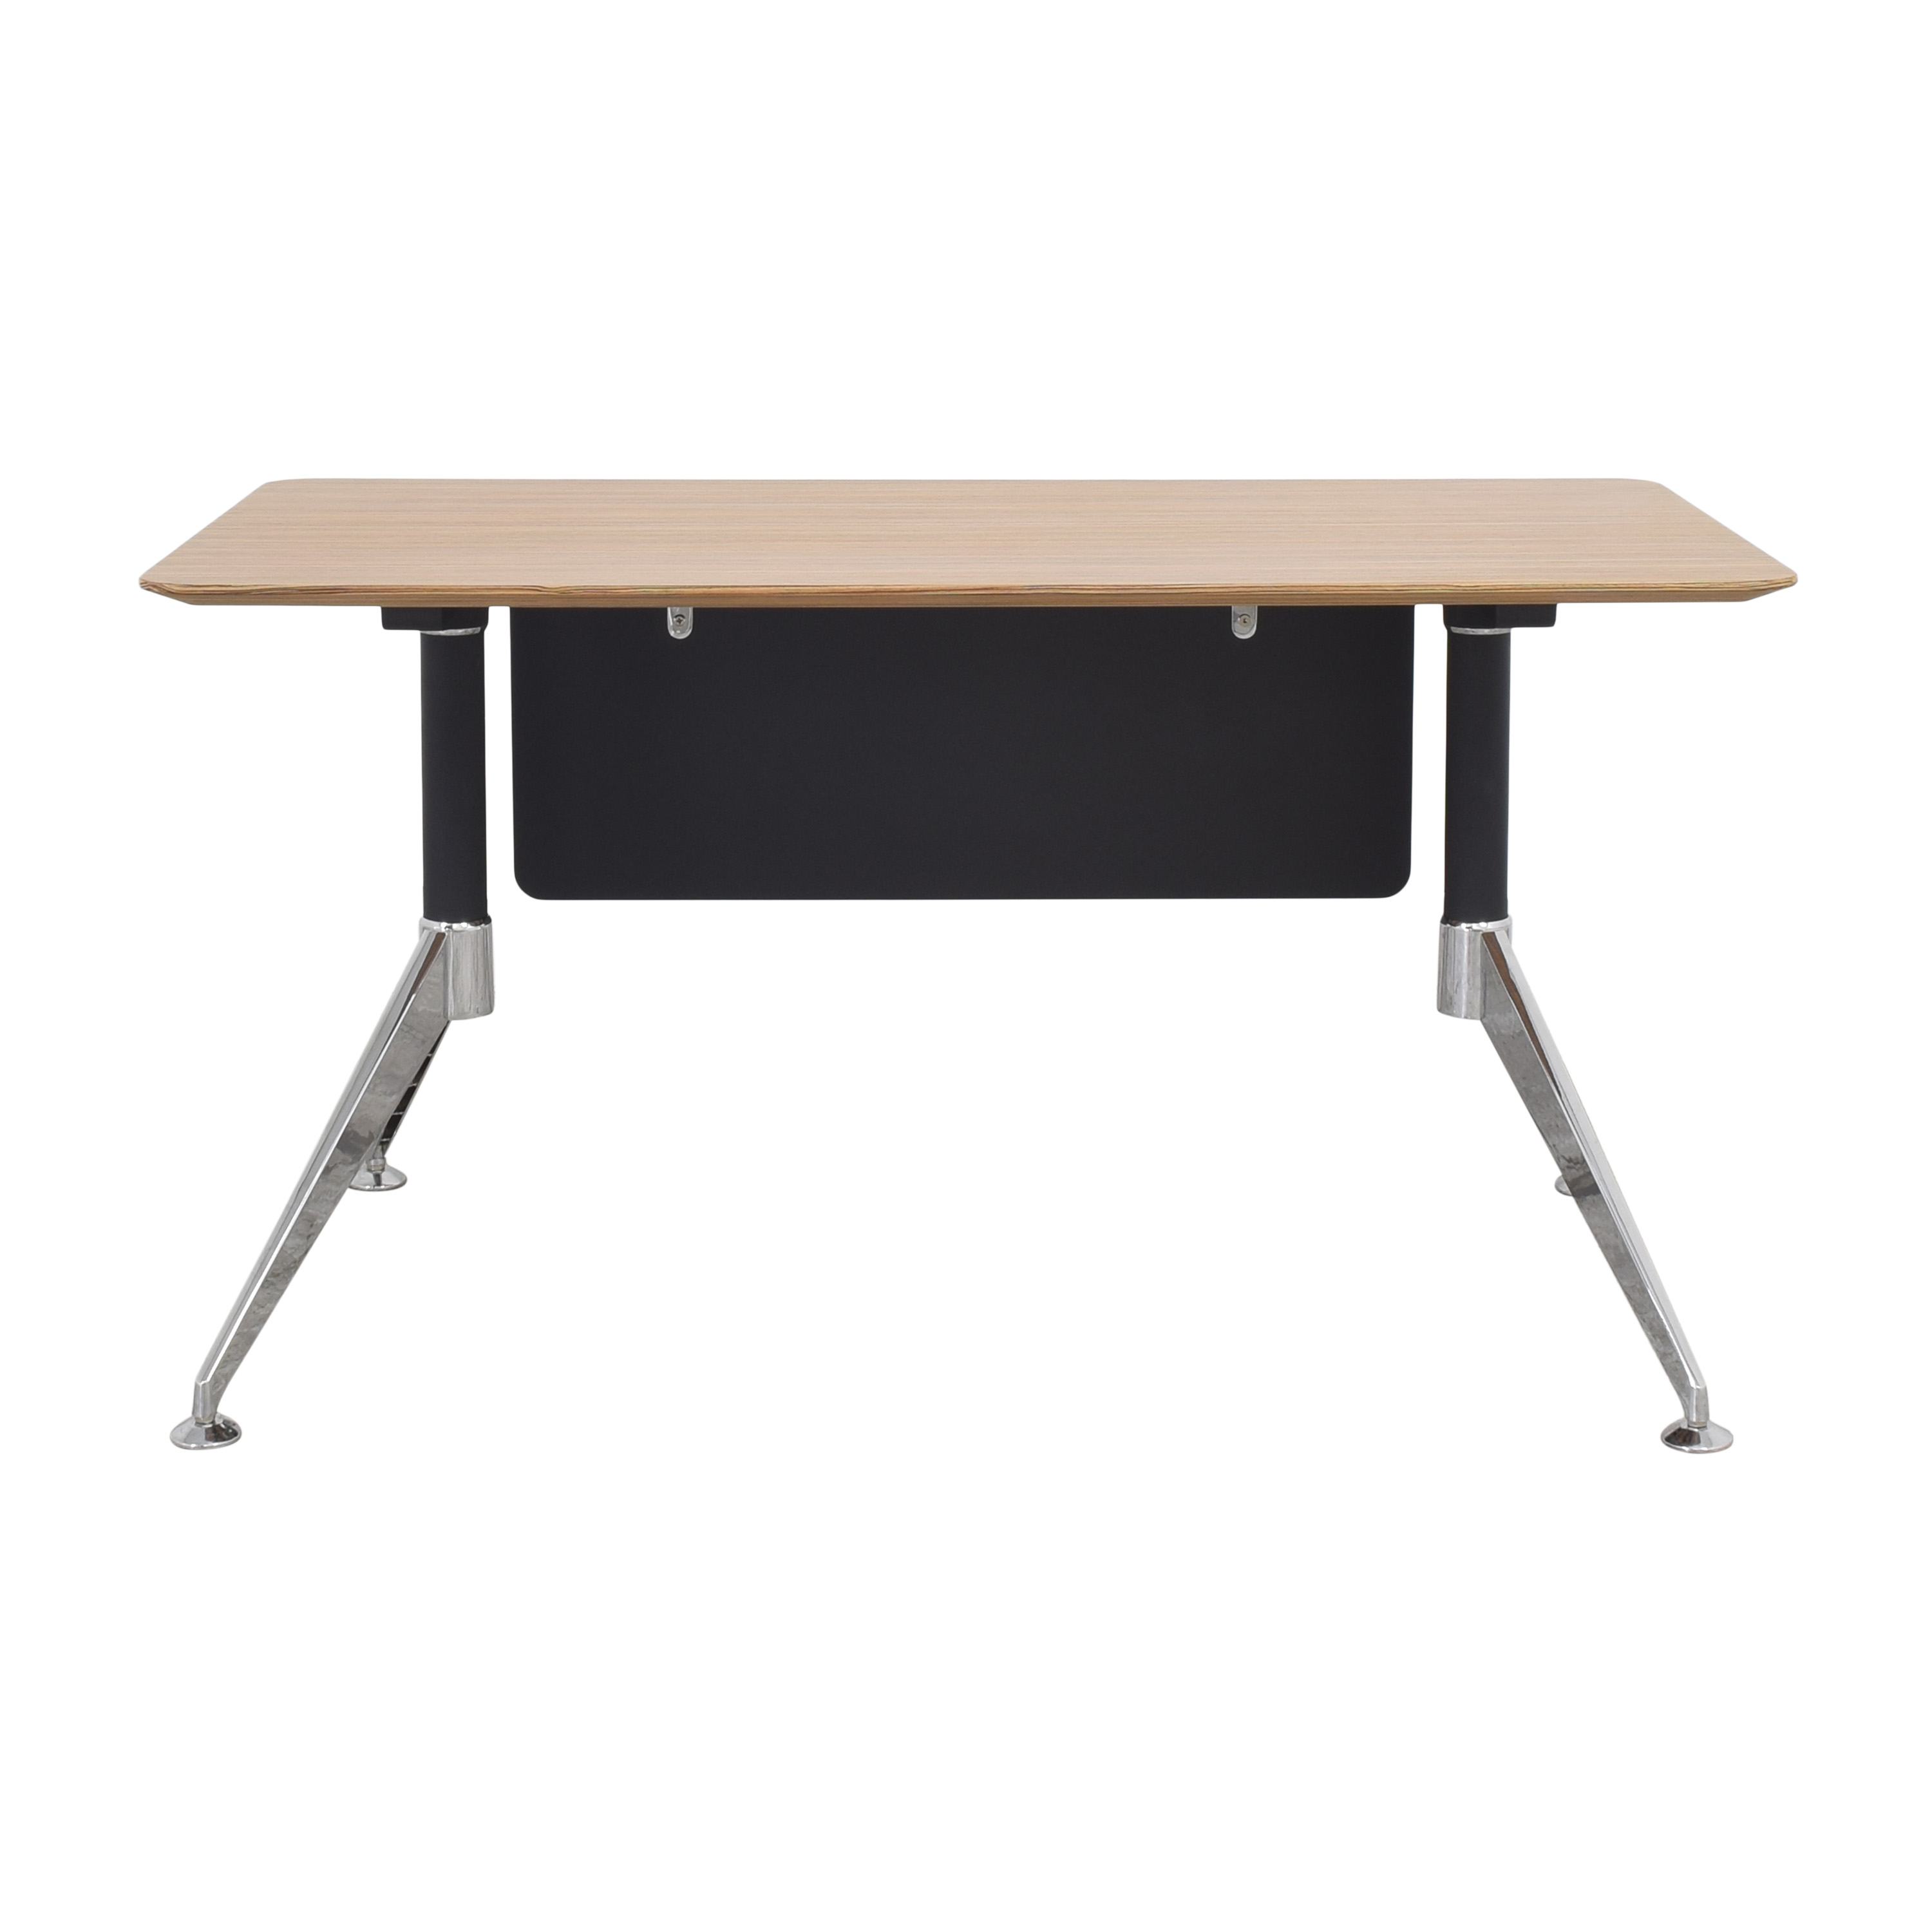 Jesper Office Jesper Office Zebrano Trondheim Desk used